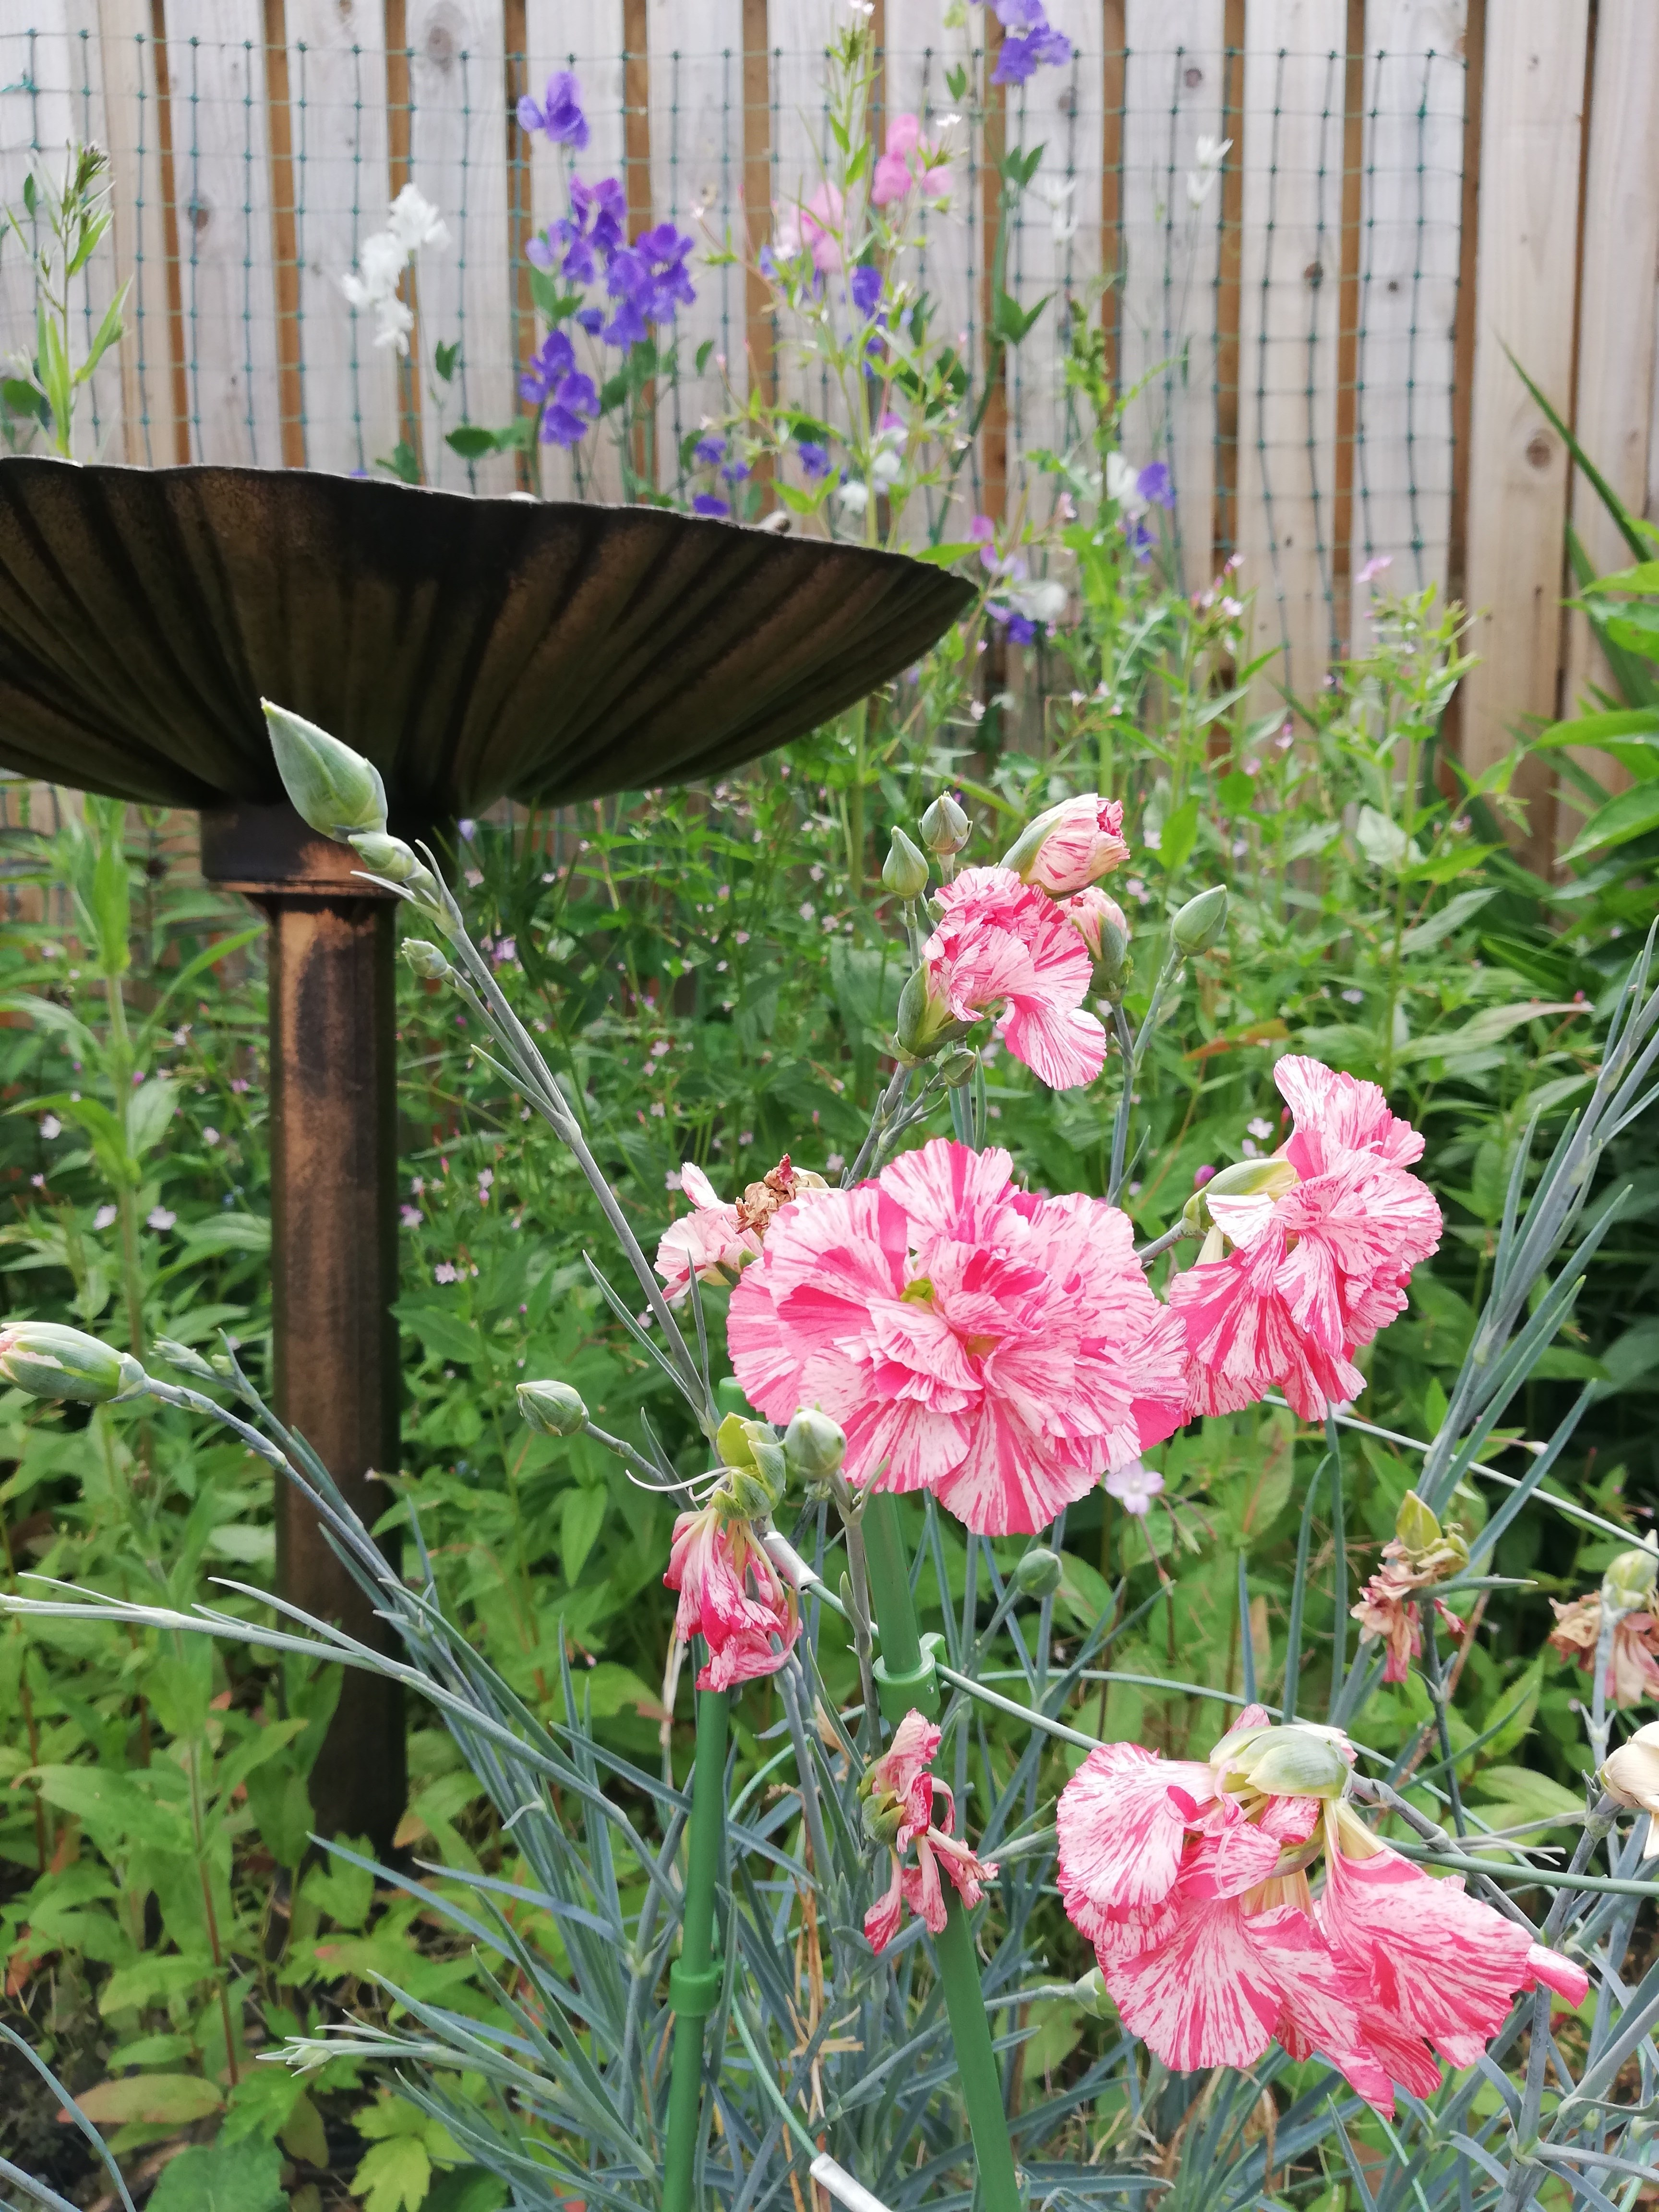 A pink stripy carnation in front of a copper bird bath, a wooden fence behind.